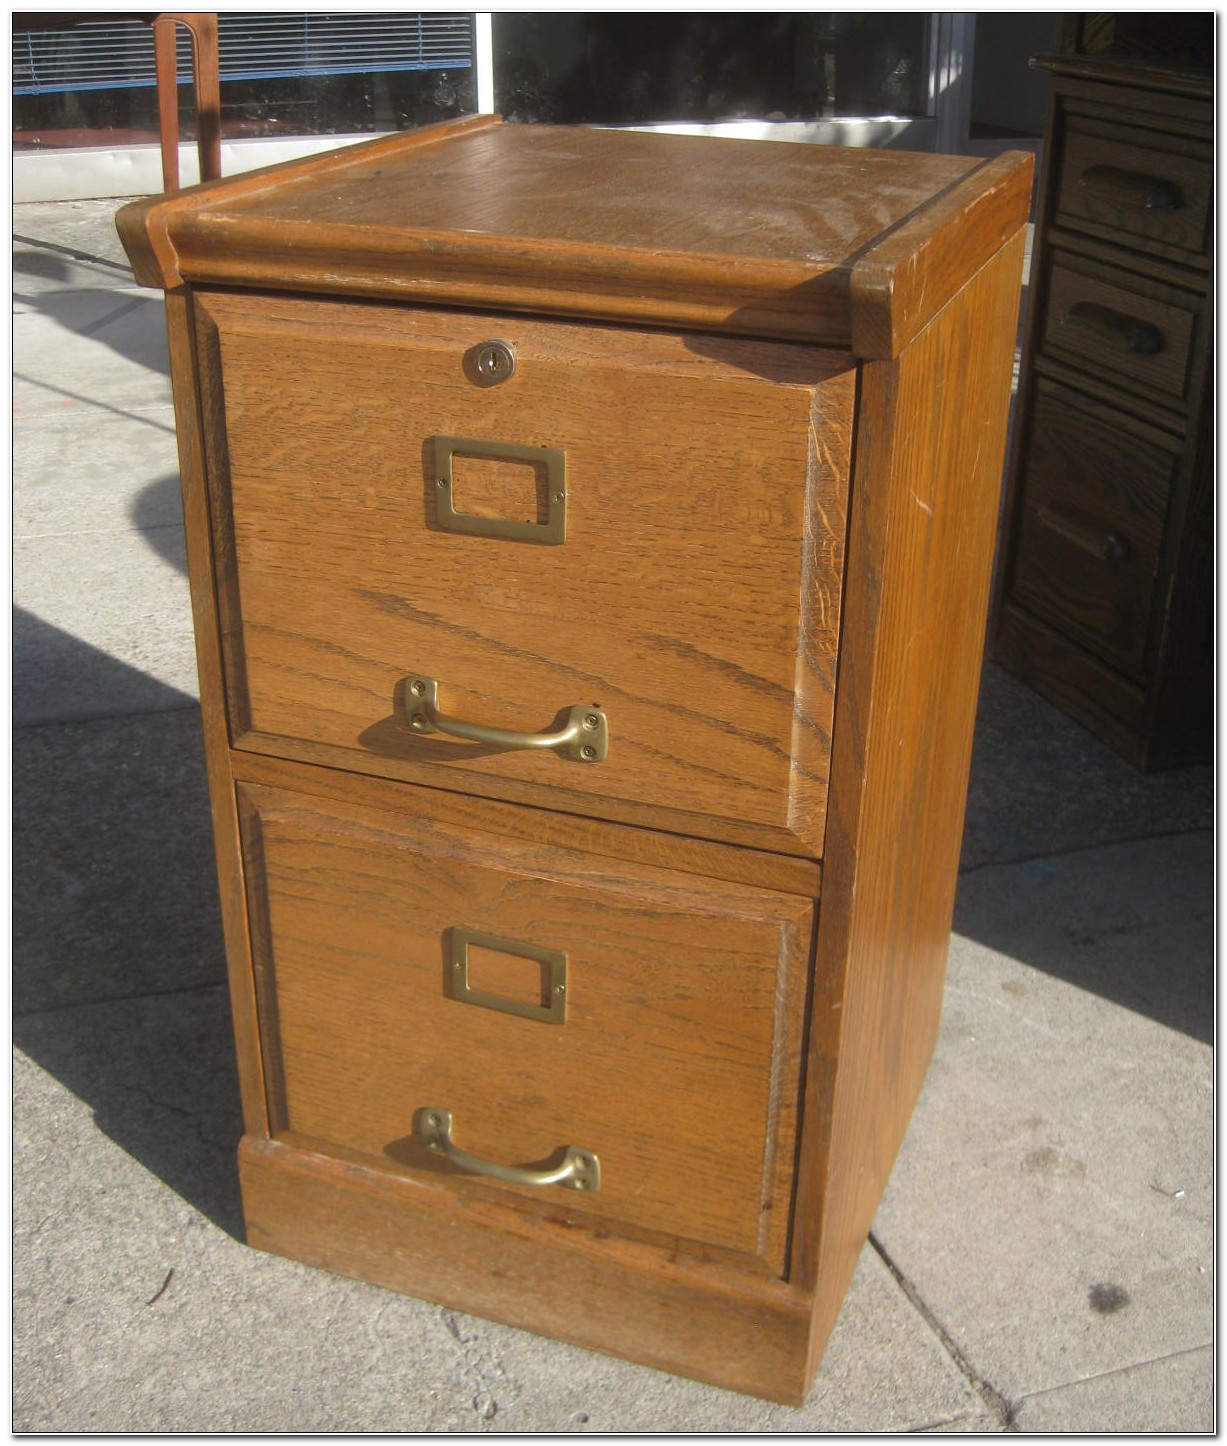 2 Drawer Wood Filing Cabinet With Wheels